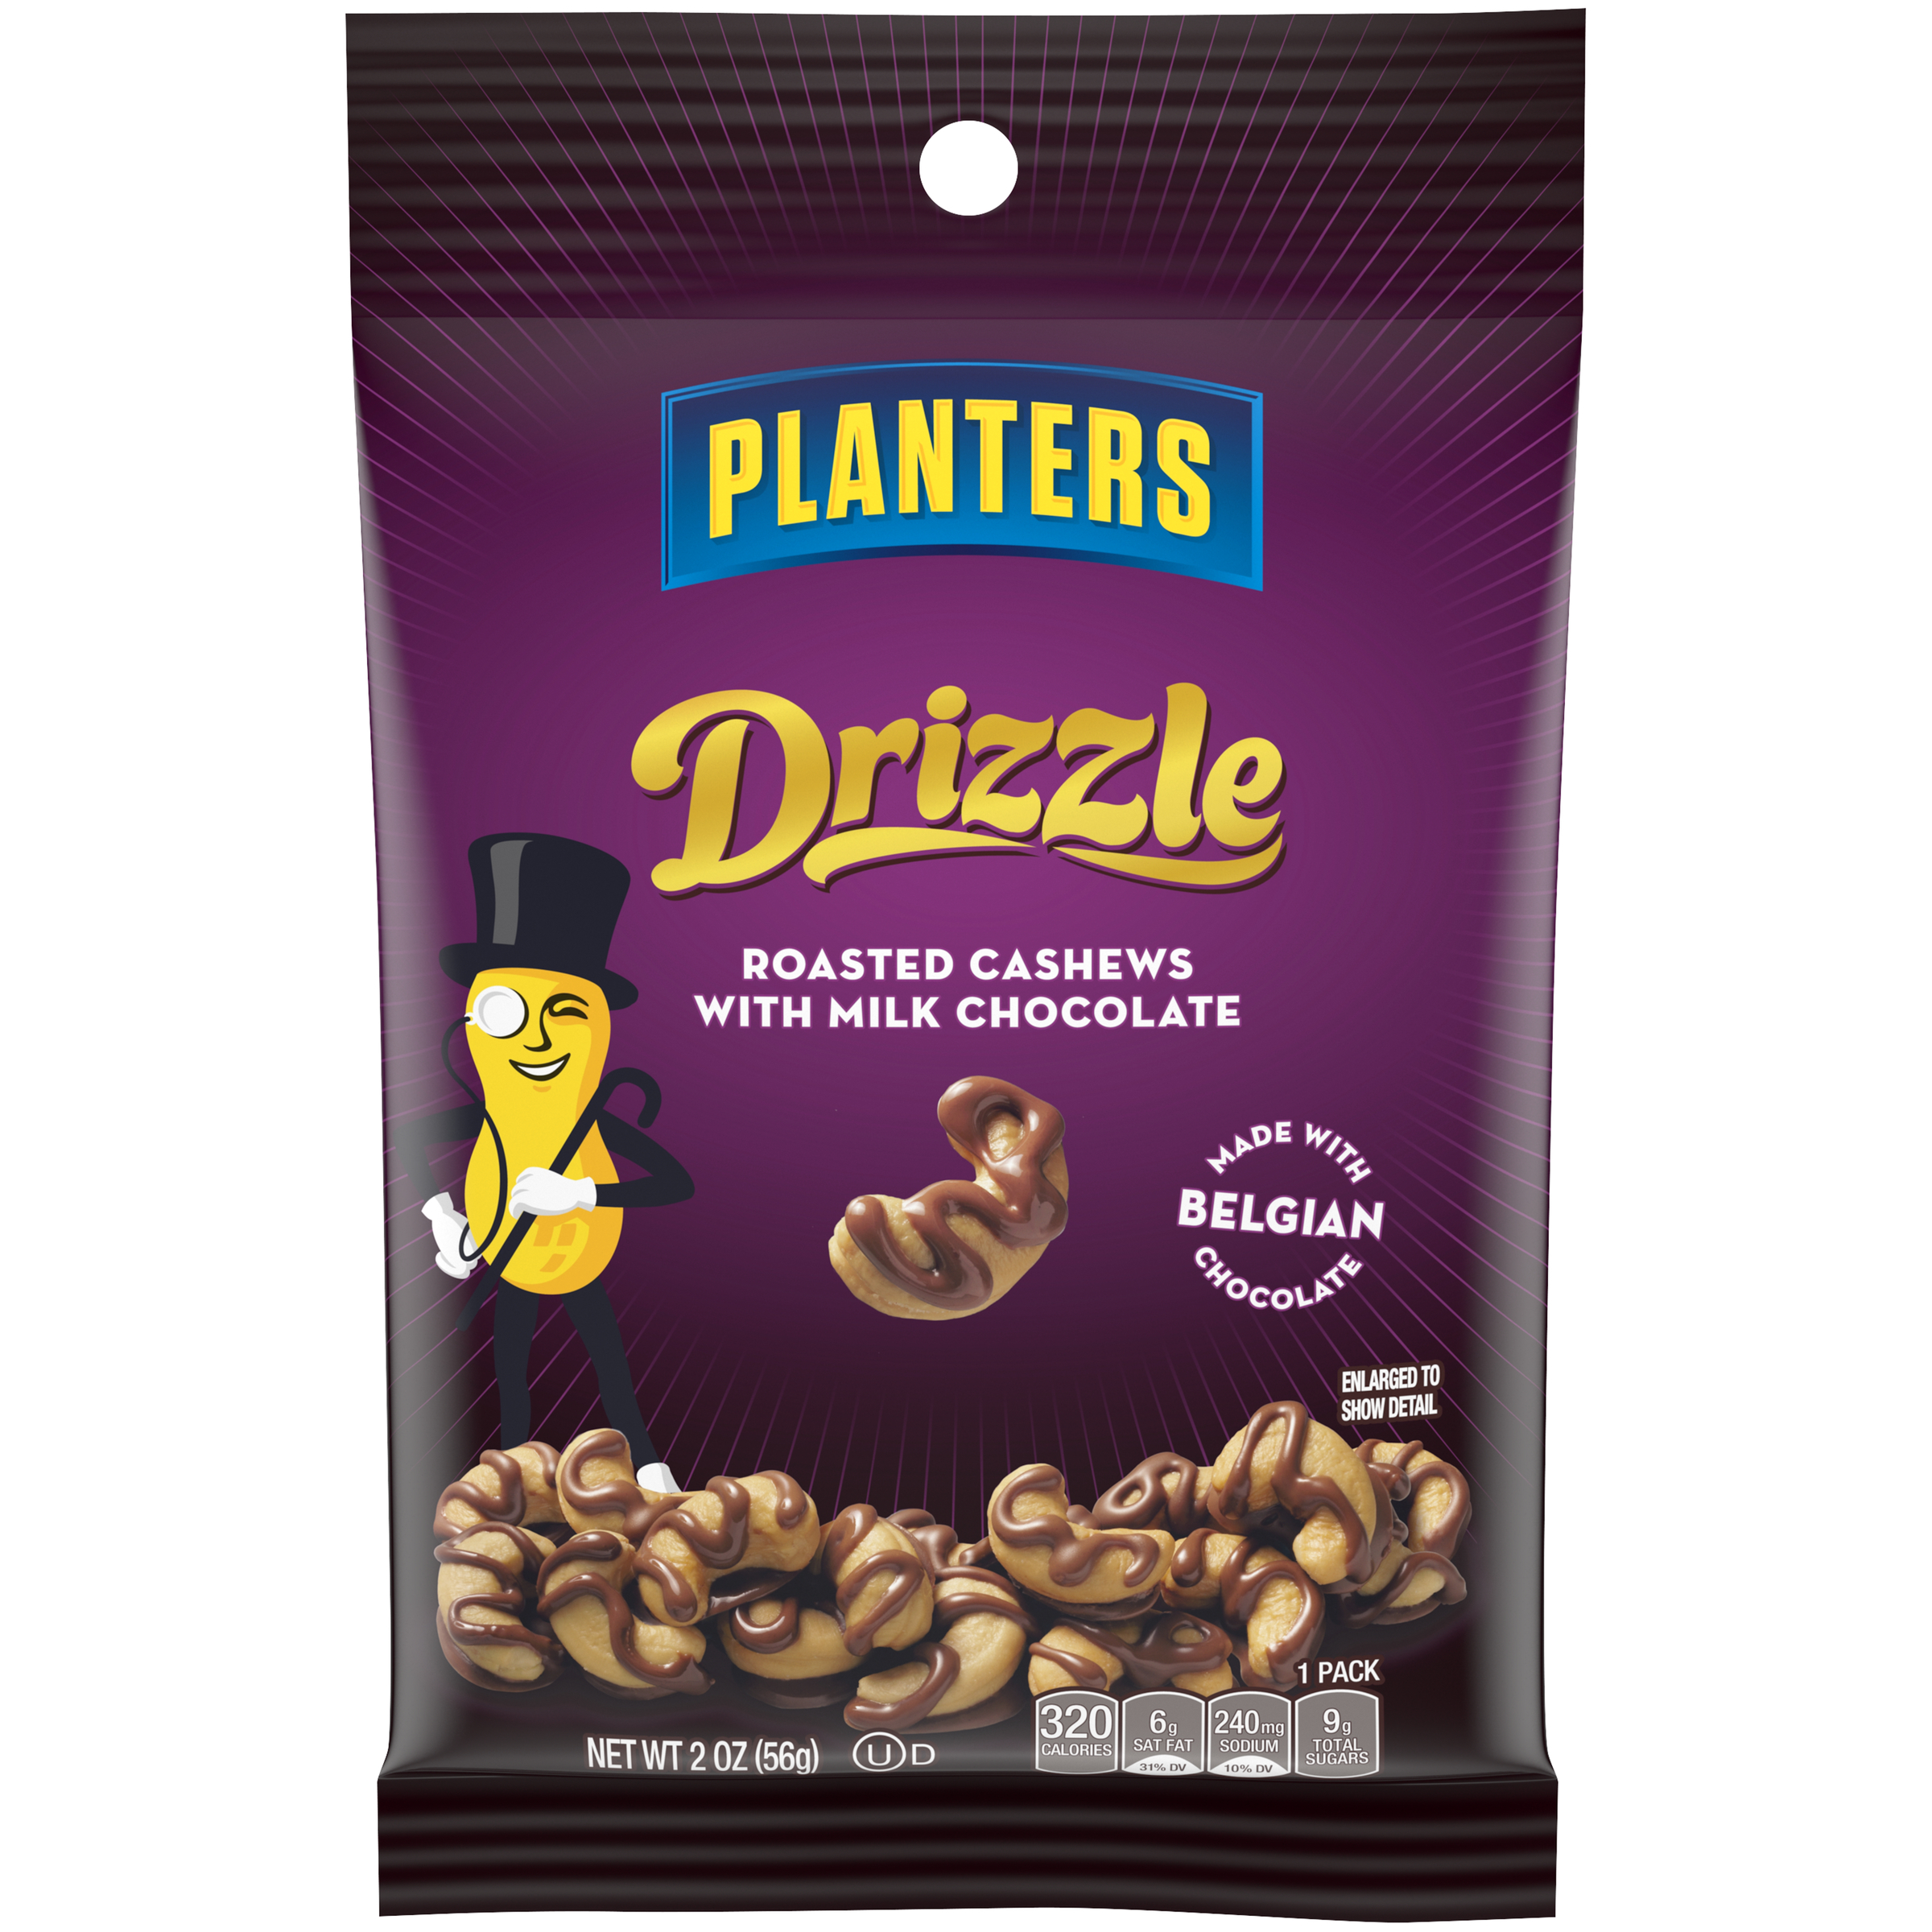 PLANTERS® On-the-Go Chocolate Drizzle Cashews 2 oz packet